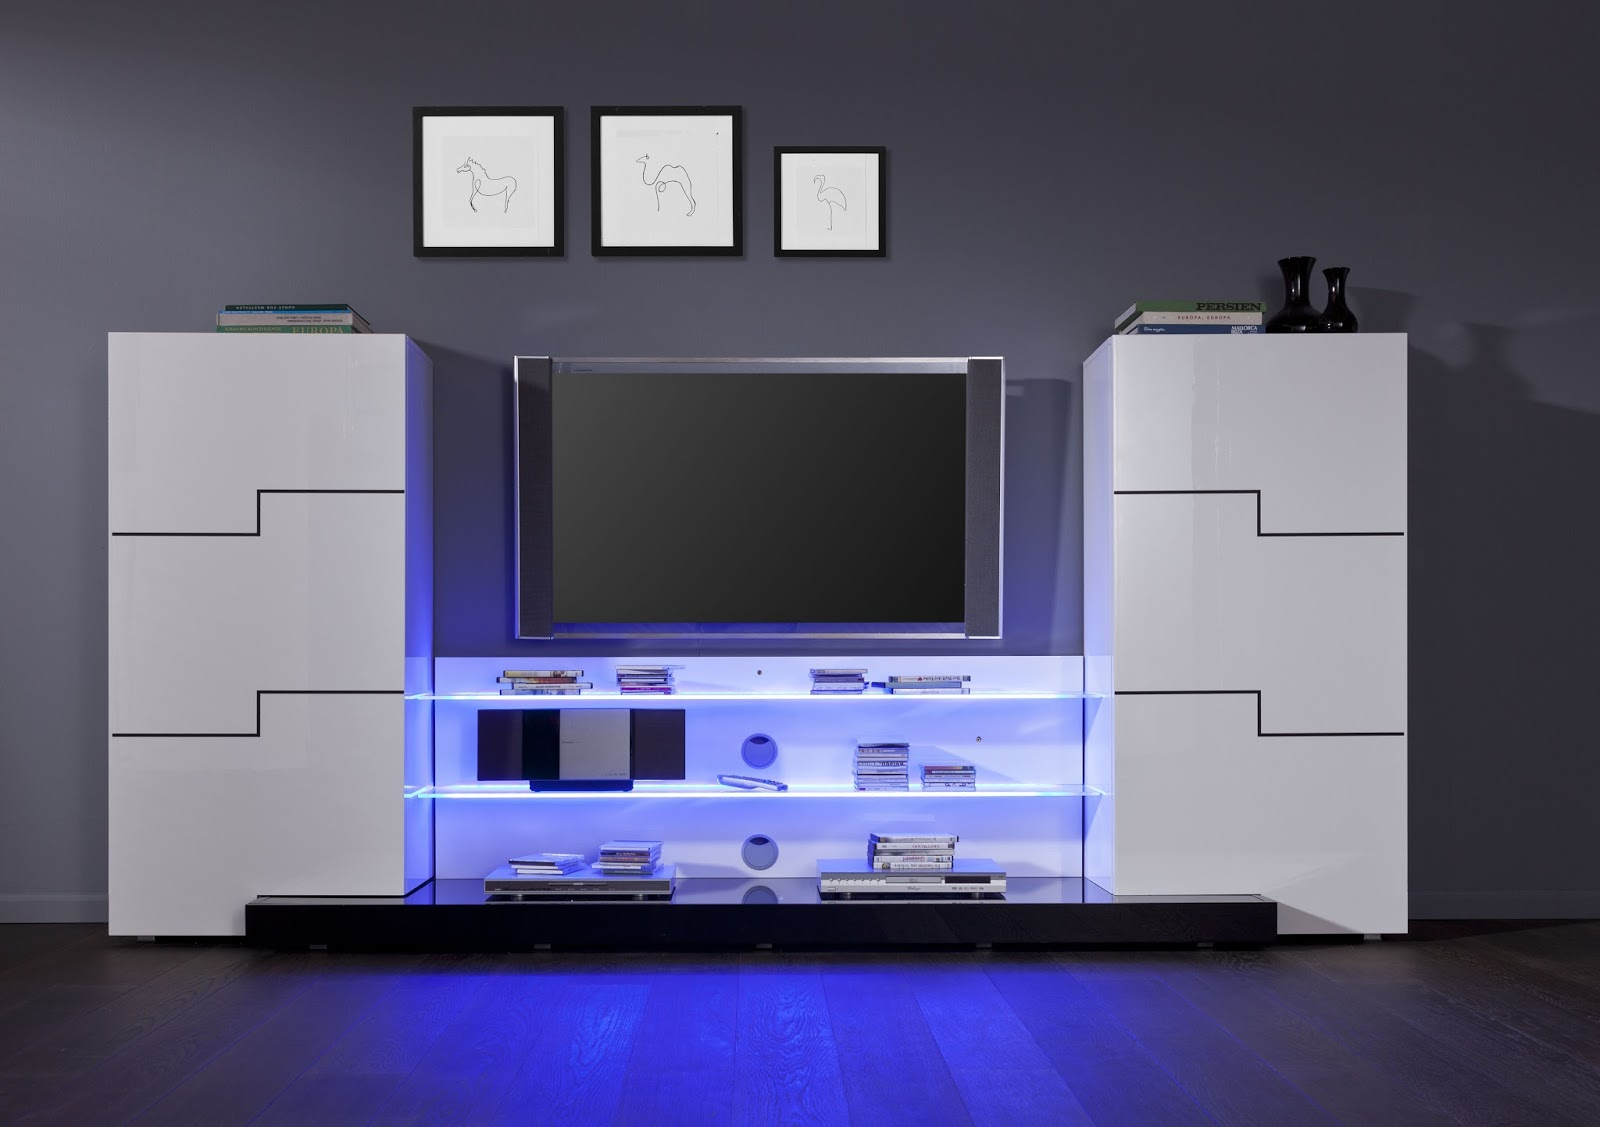 Meuble Tv Miami Led Fenrez Com Sammlung Von Design Zeichnungen  # Meuble Tv Noir Laque Led